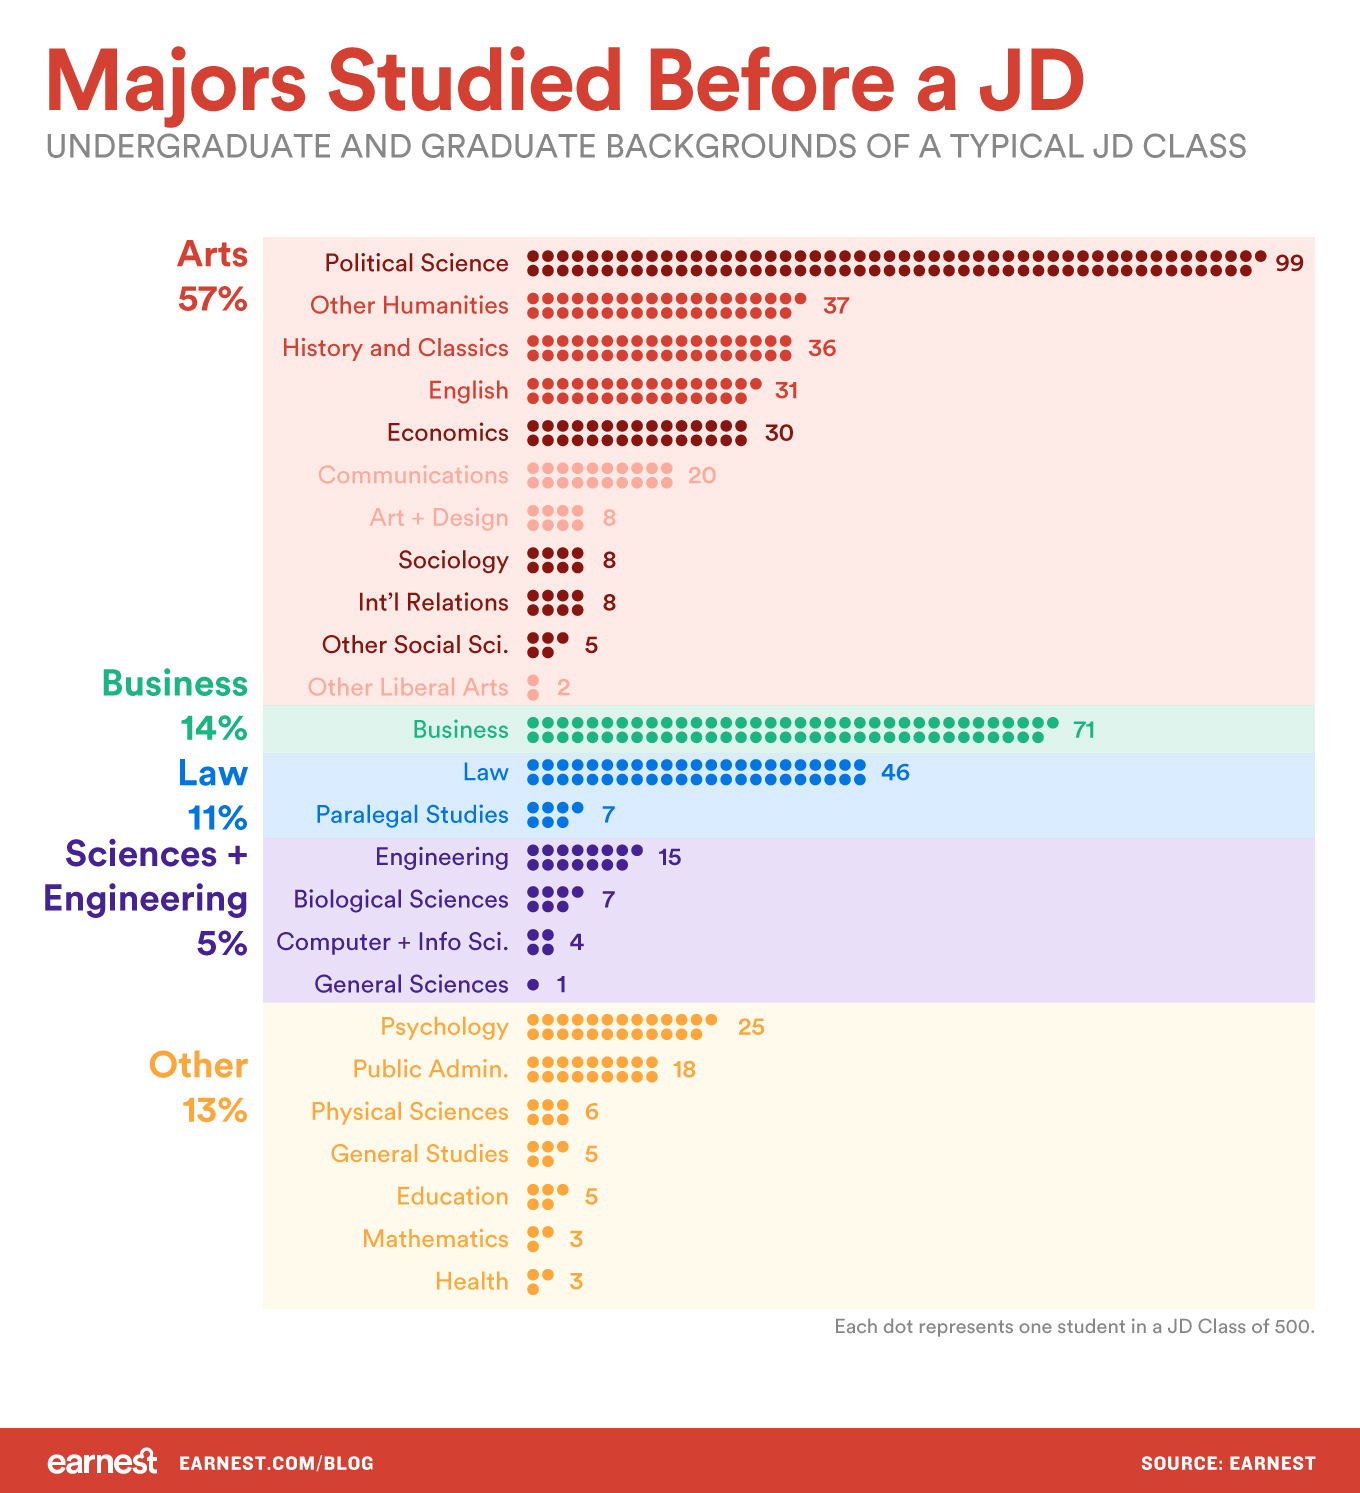 majors-studied-before-a-jd